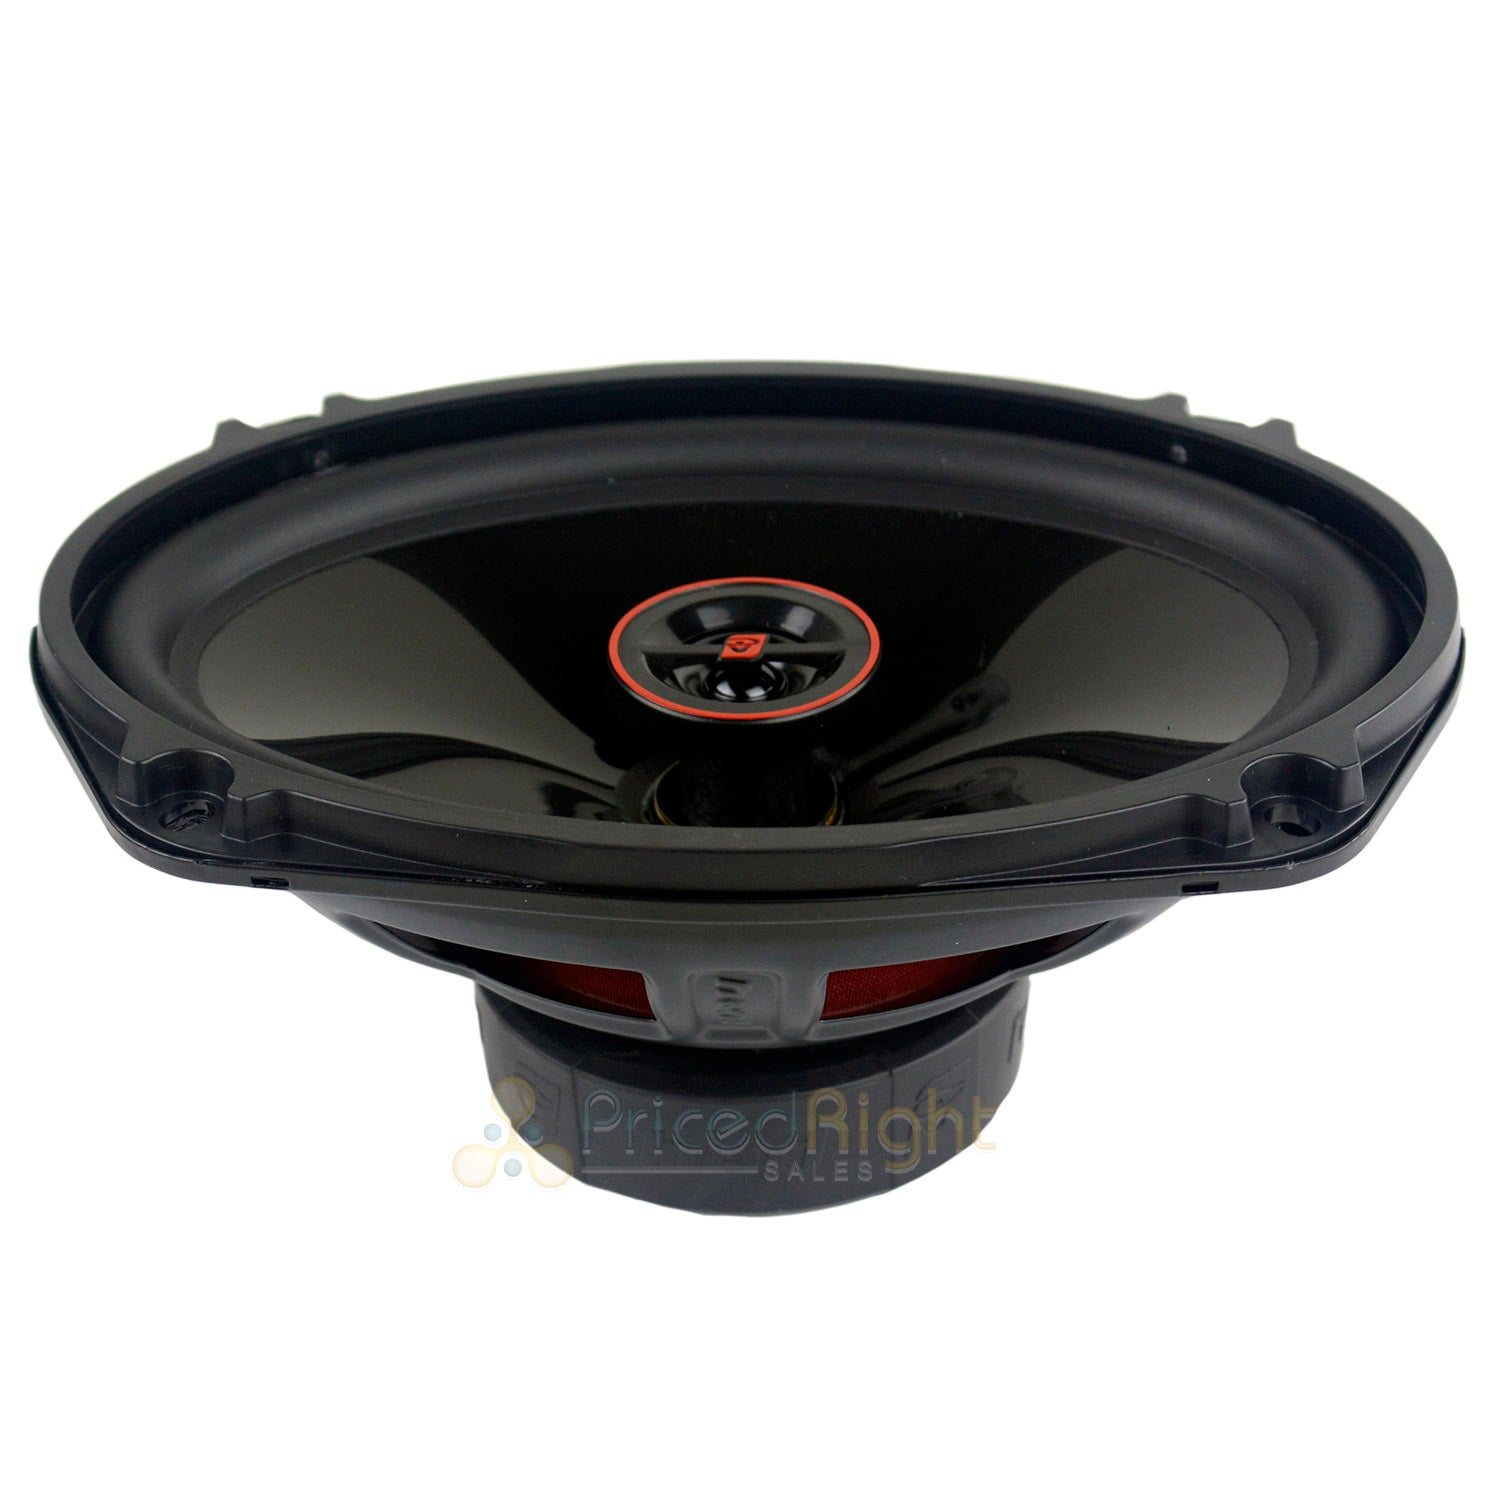 "4 Pack Cerwin Vega 6x9"" 2 Way Coaxial Speakers 400W Max 55 Watts RMS H7692 HED"